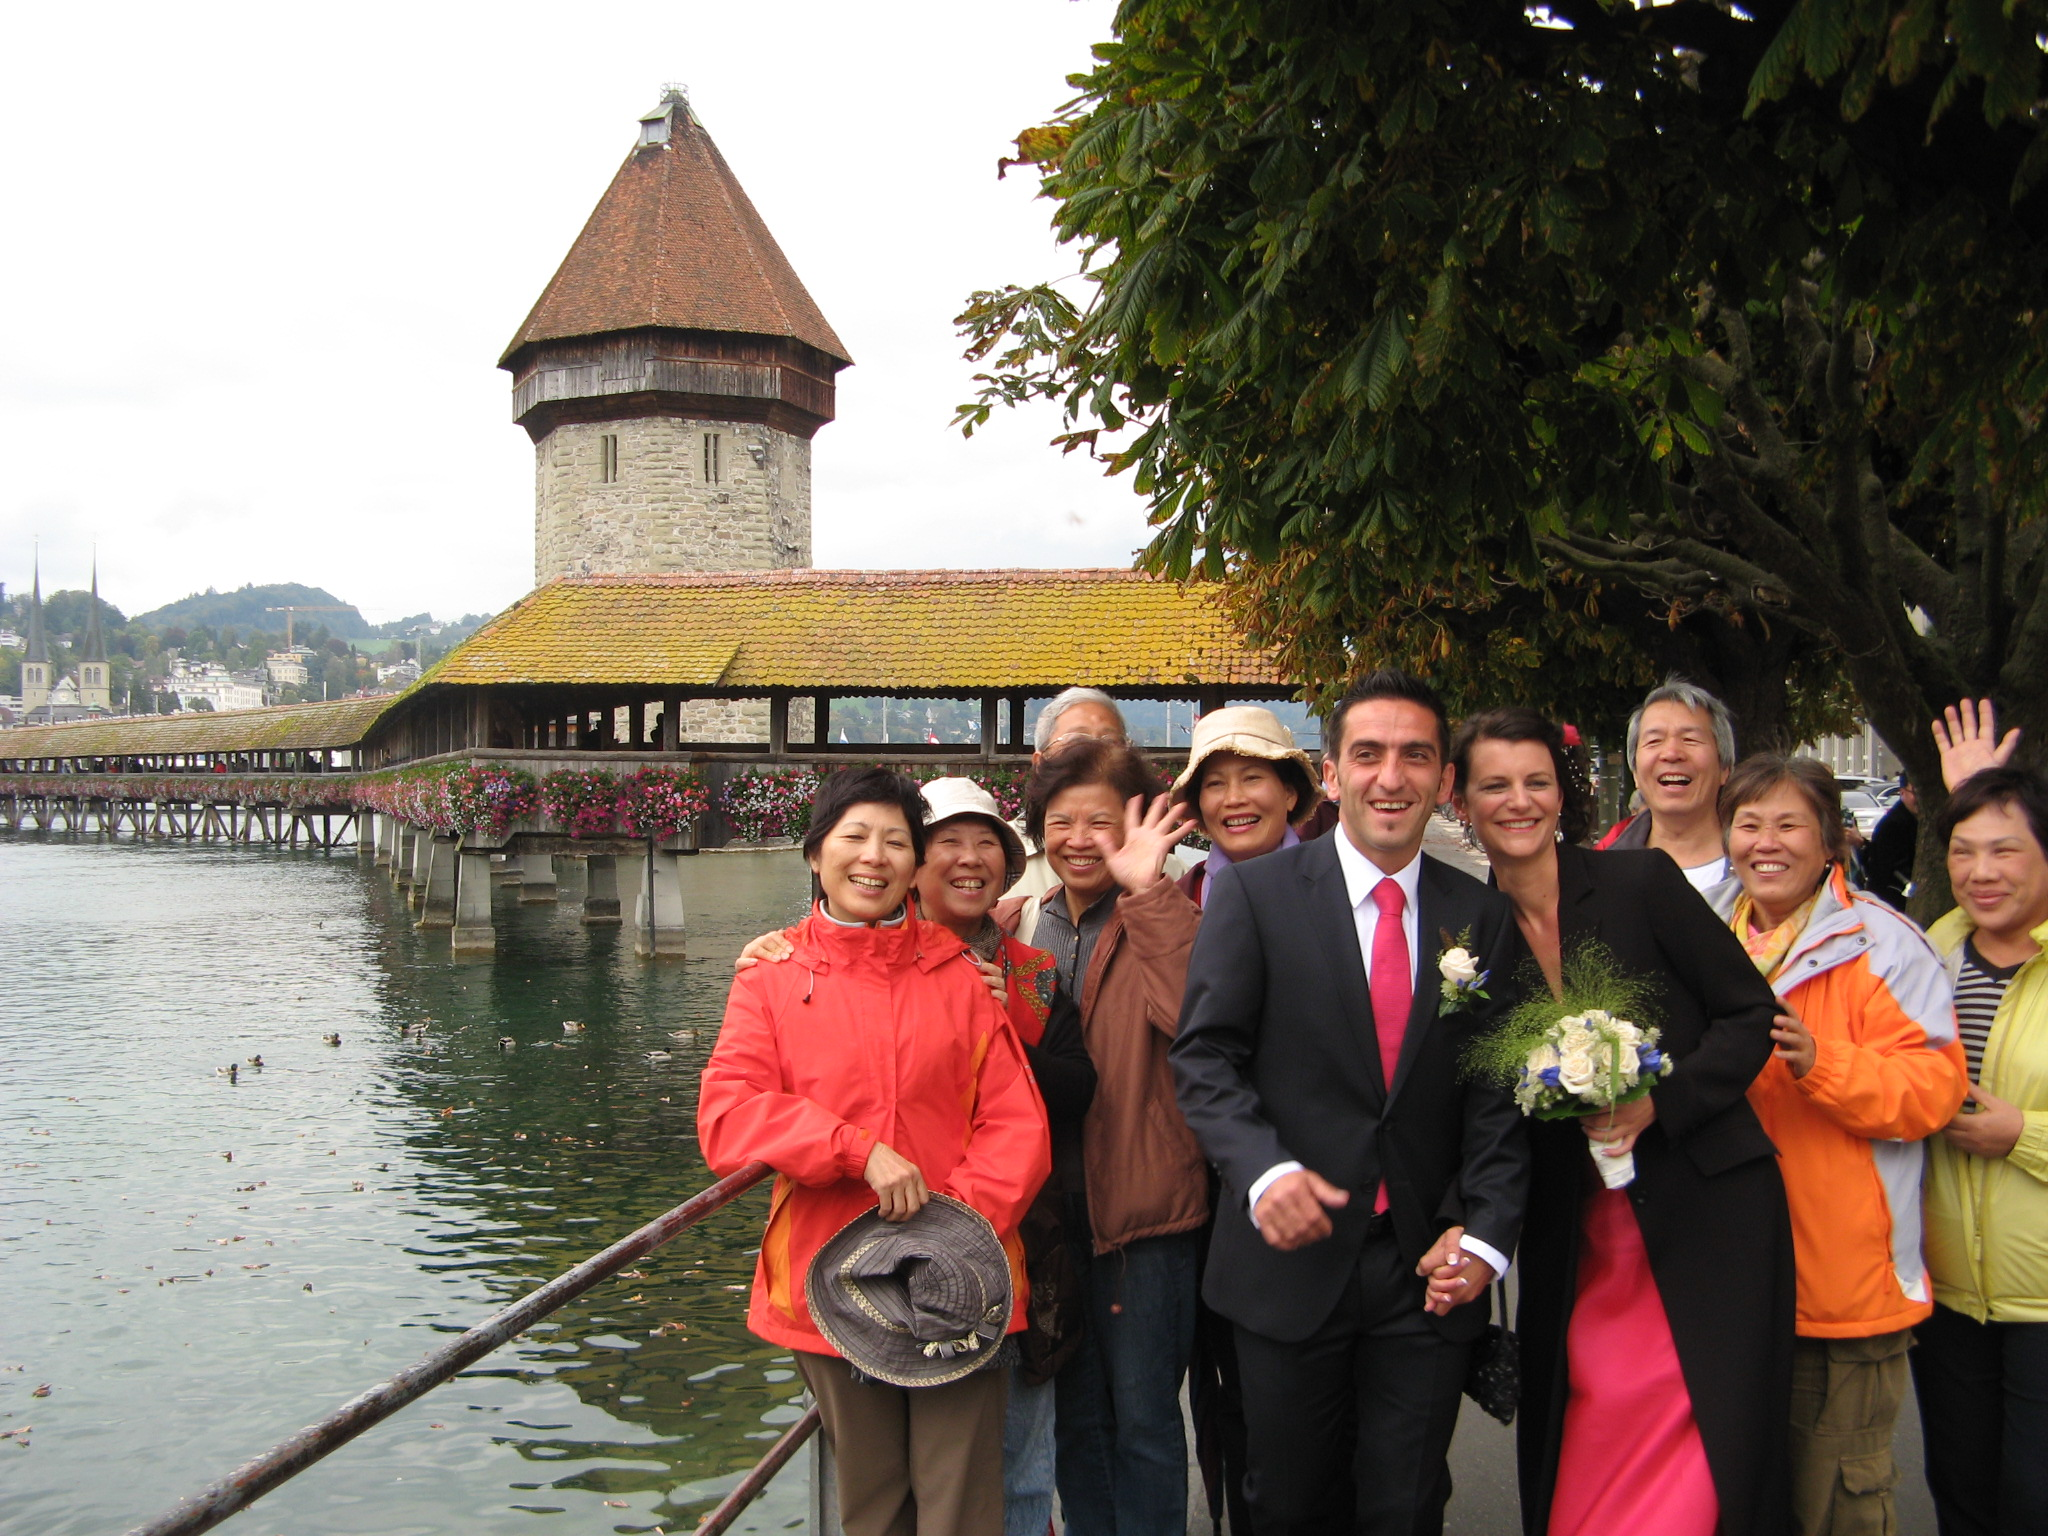 2010 wedding at Lucerne